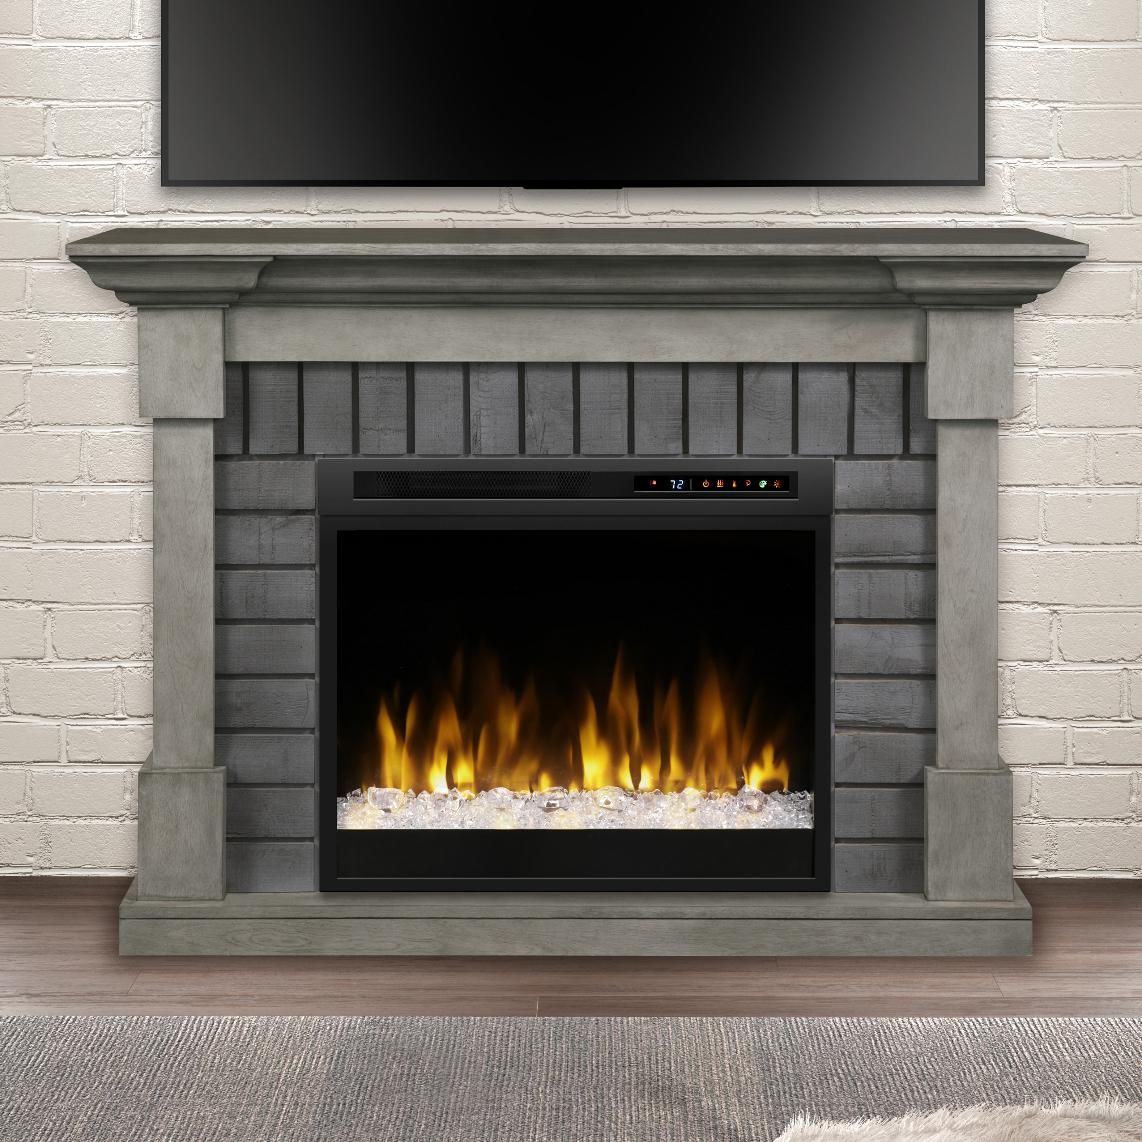 Dimplex Gds28g8 1924sk Royce 52 Inch Electric Fireplace